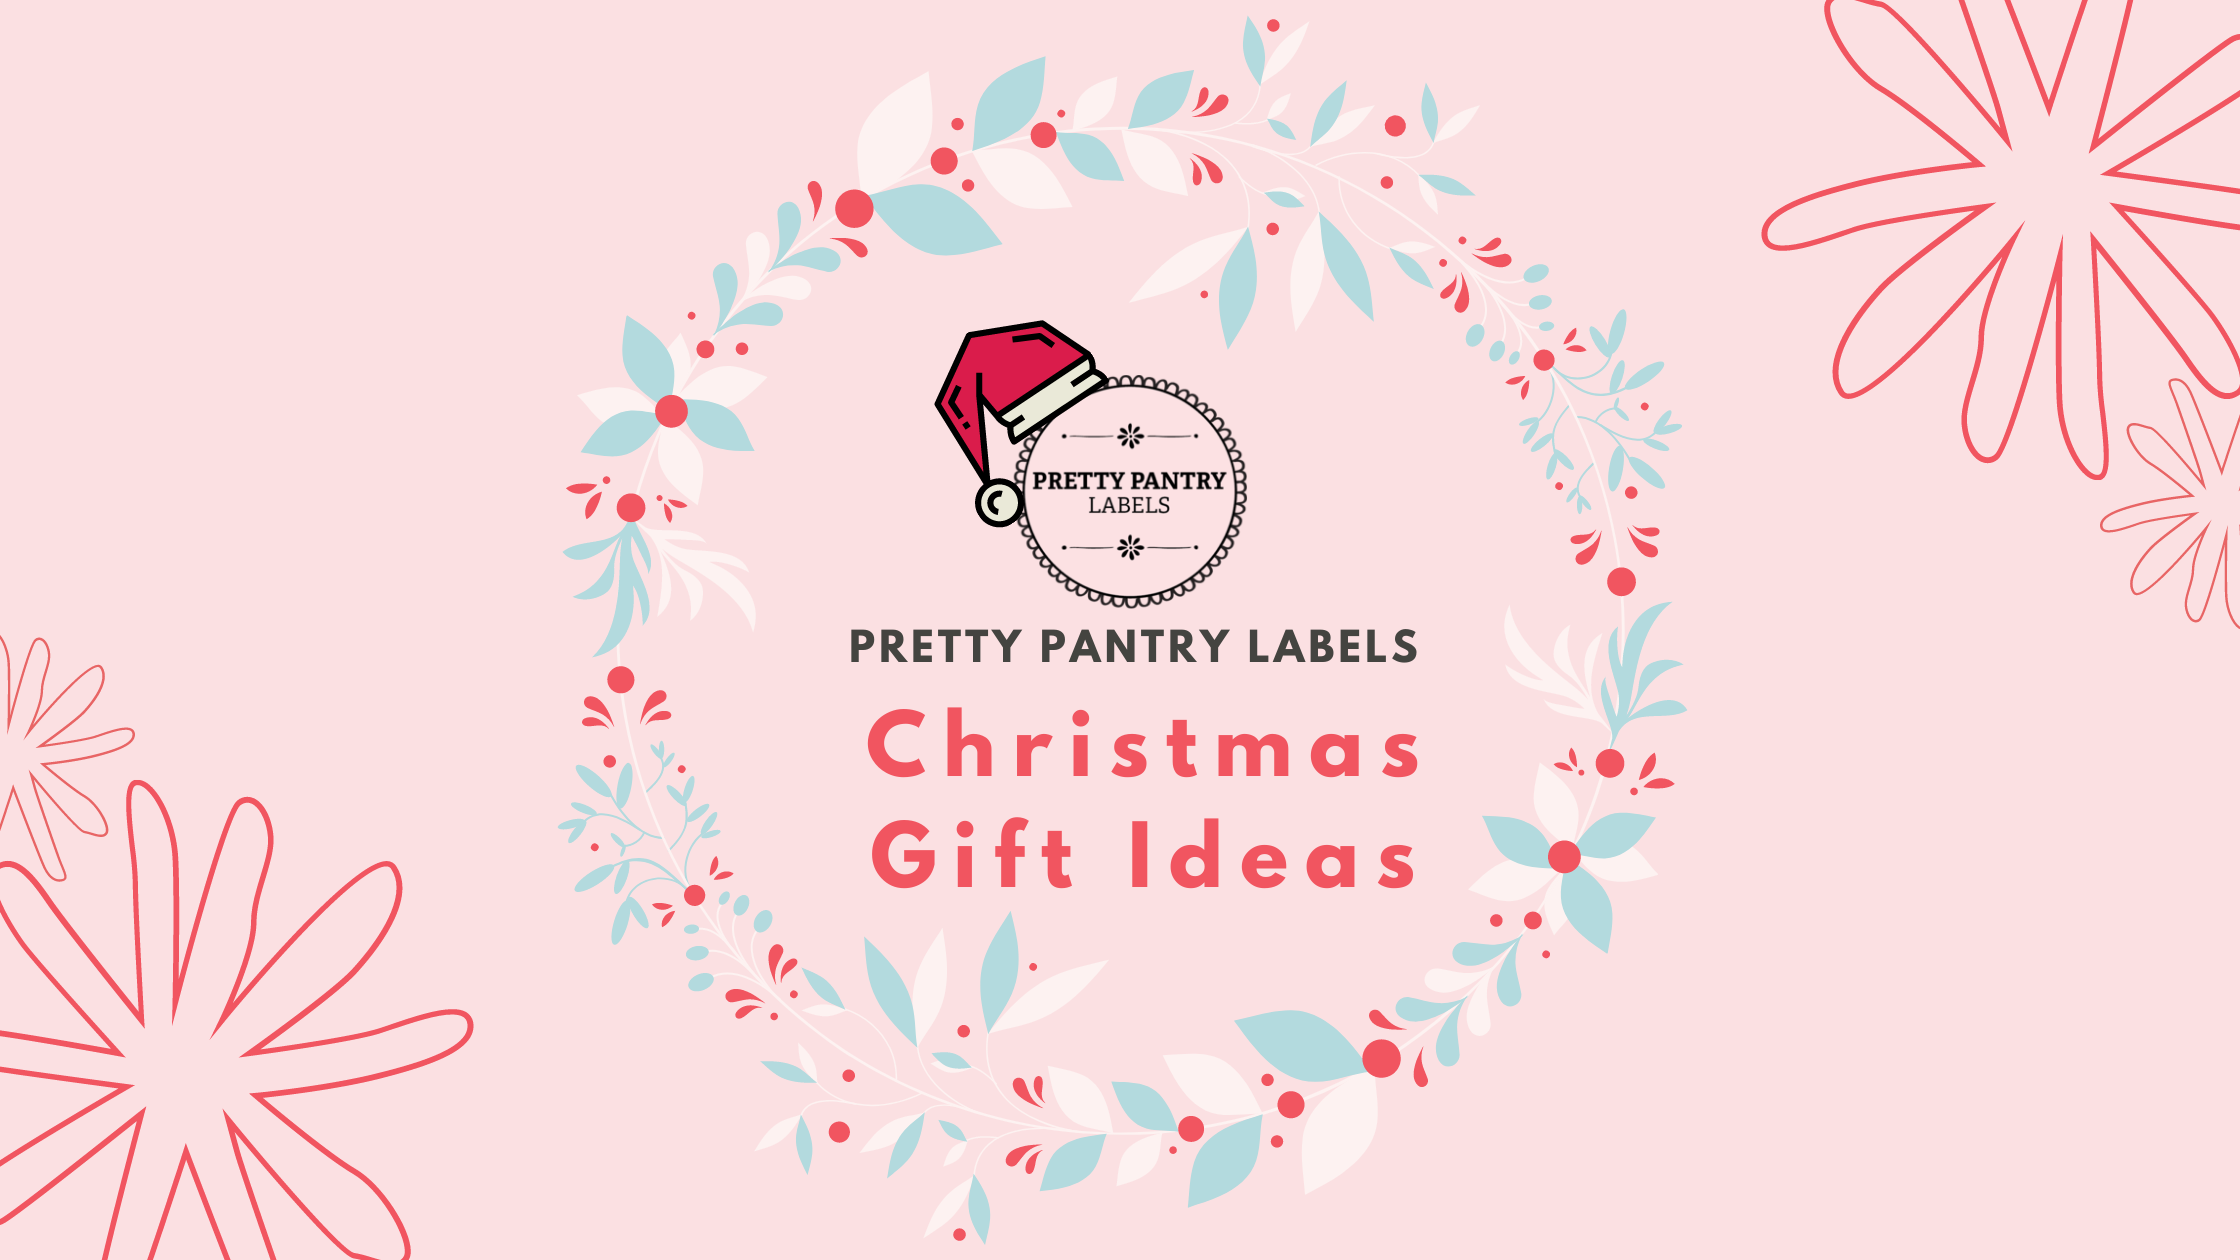 Pretty Pantry Labels Christmas Gift Ideas